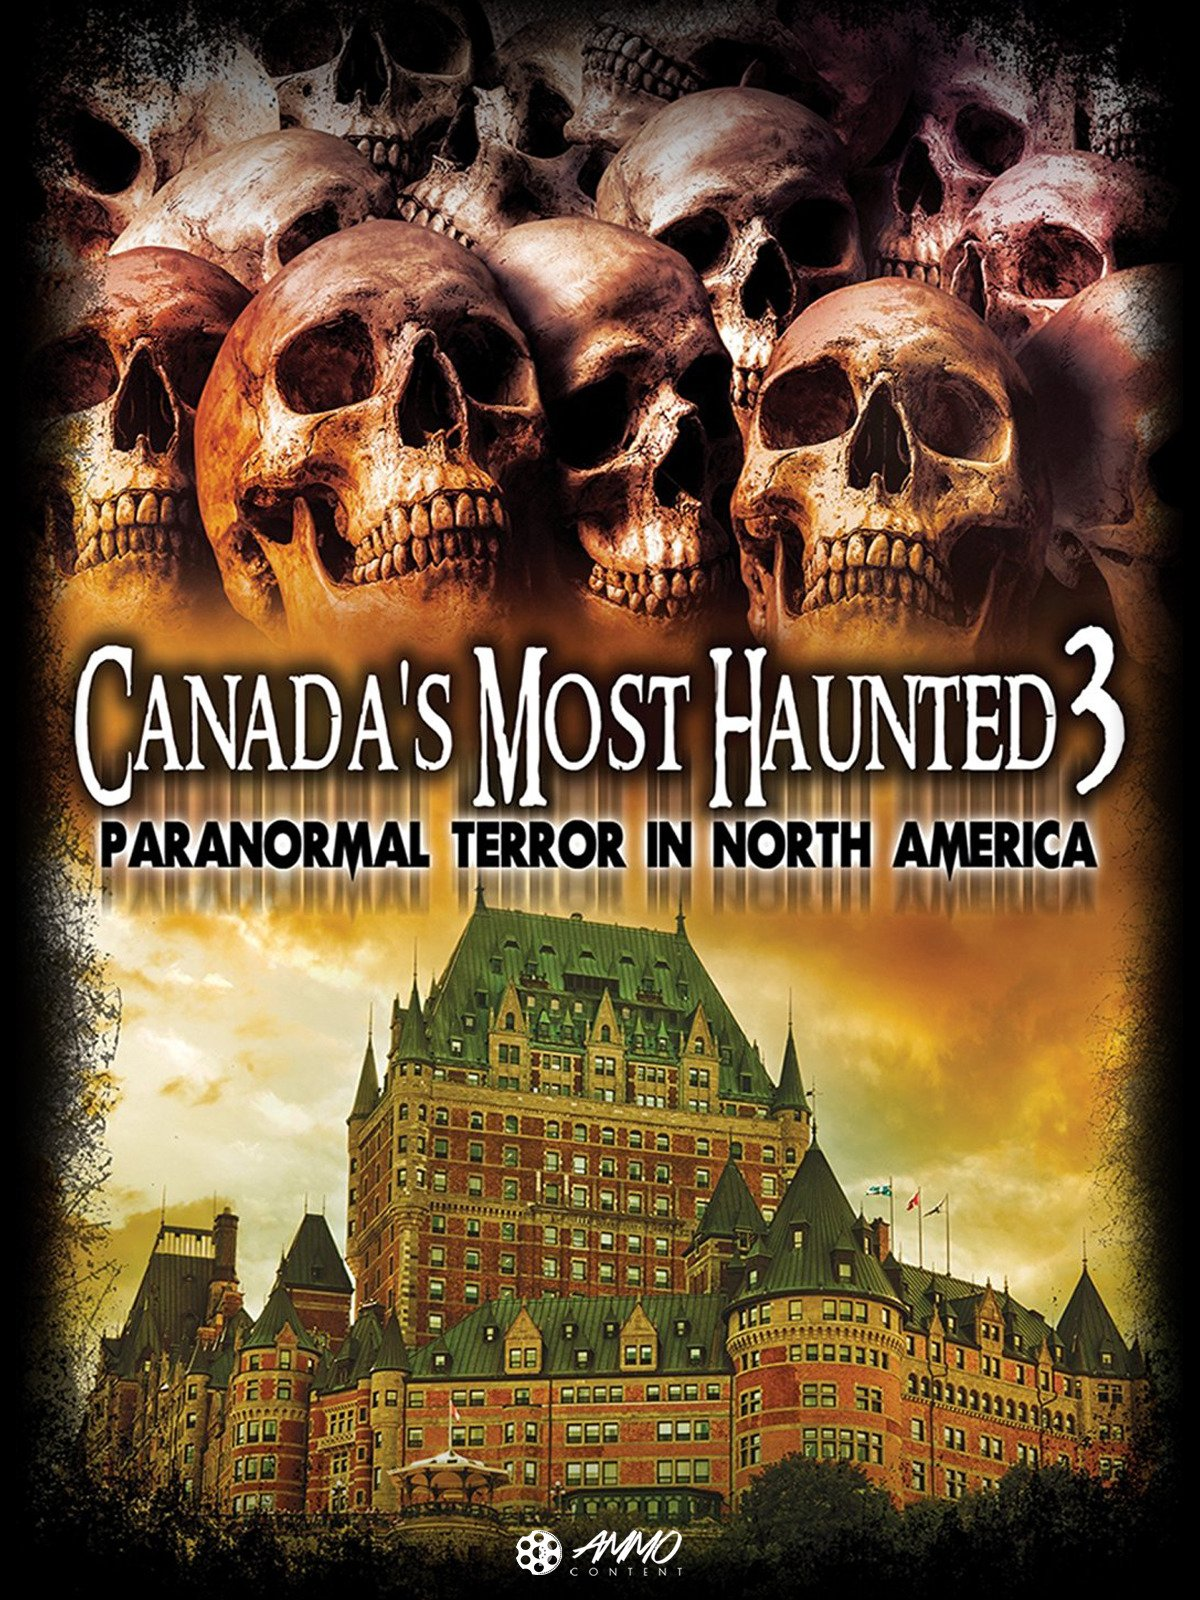 Canada's Most Haunted 3: Paranormal Terror in North America